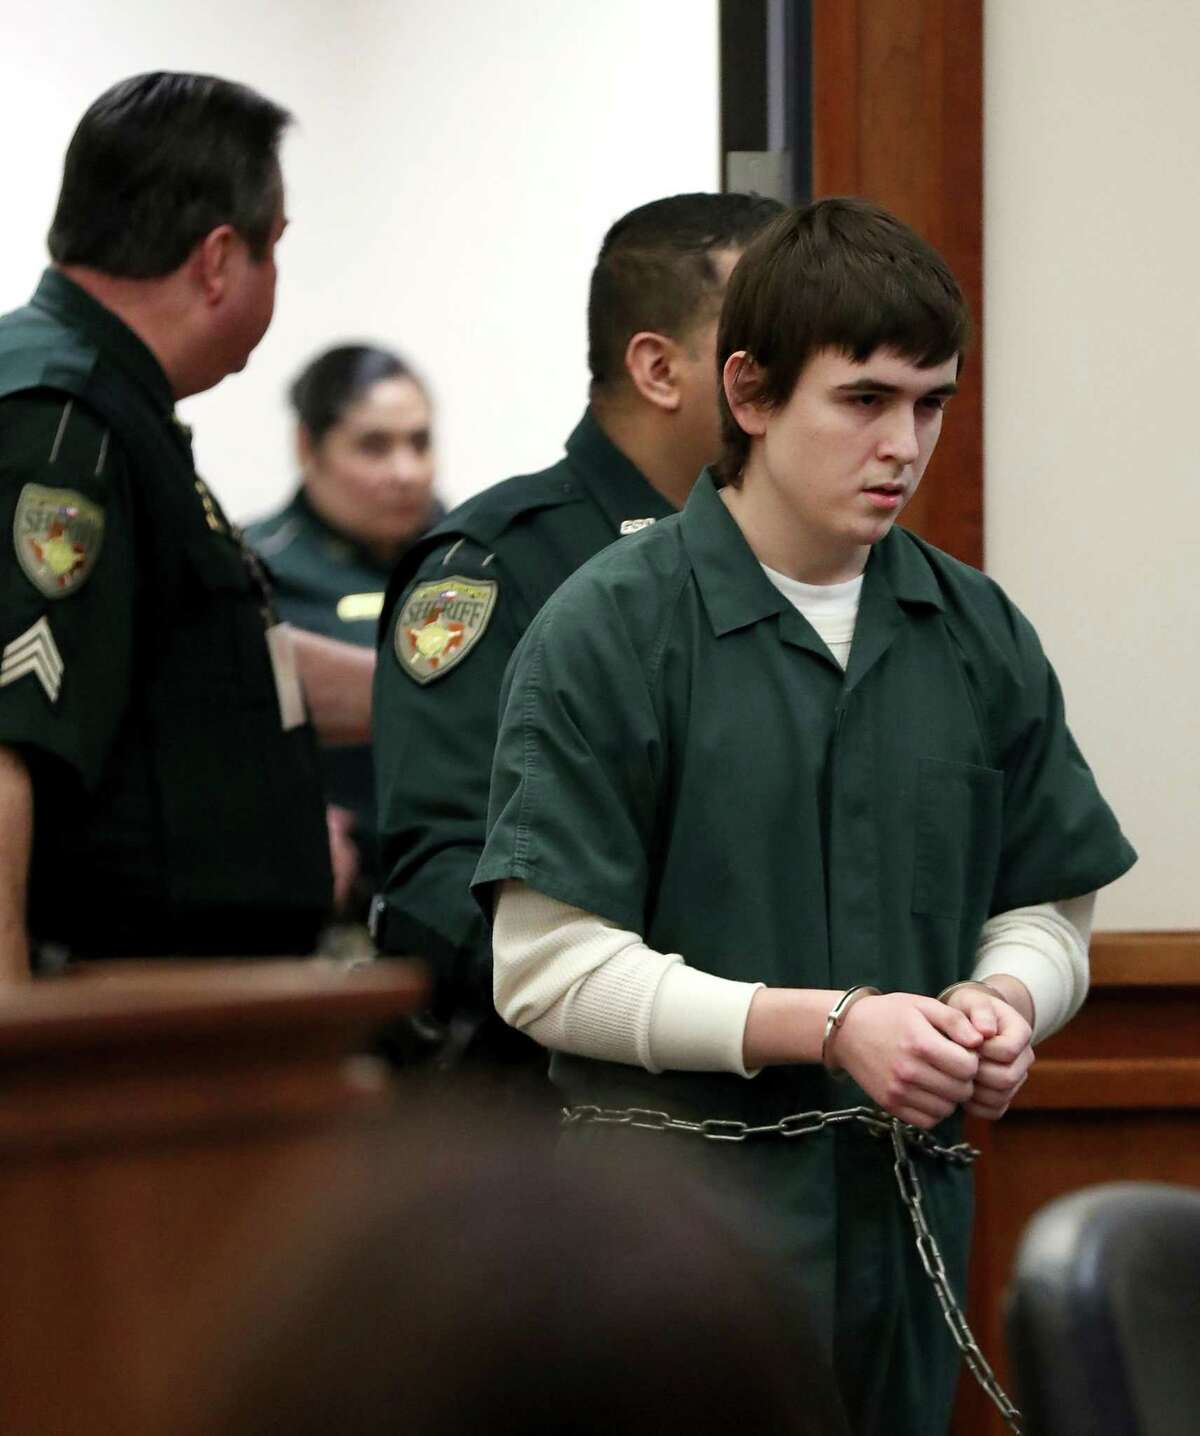 Dimitrios Pagourtzis, the Santa Fe High School student accused of killing 10 people in a May 18 shooting at the high school, is escorted by Galveston County Sheriff's Office deputies into the jury assembly room for a change of venue hearing at the Galveston County Courthouse in Galveston, Texas on Monday, Feb. 25, 2019. (AP Photo/Jennifer Reynolds, Pool)